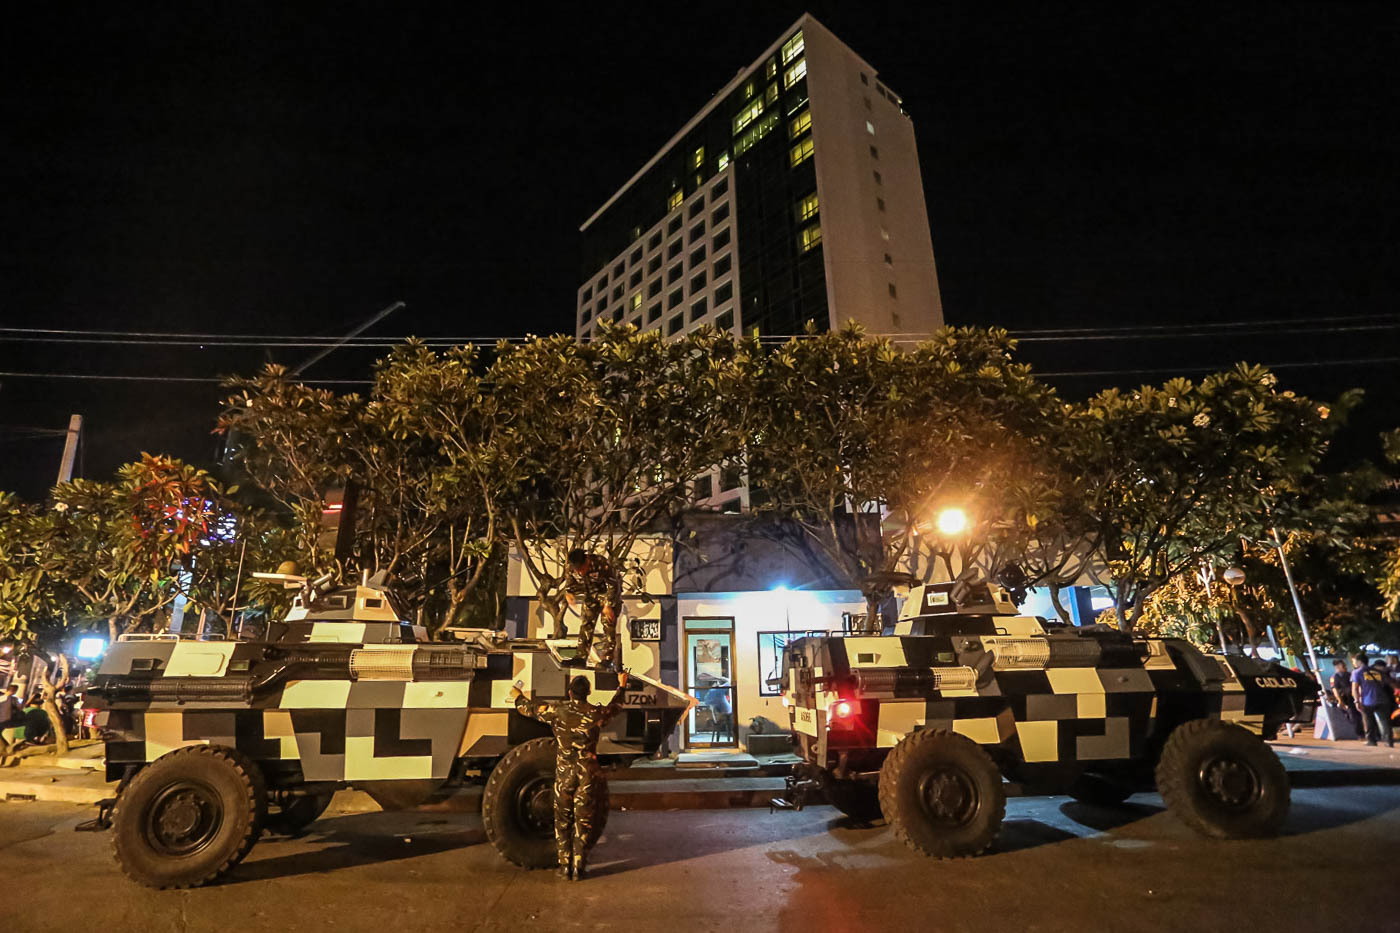 JOINT FORCES. PSG armored personnel carriers guard the Marco Polo Hotel.